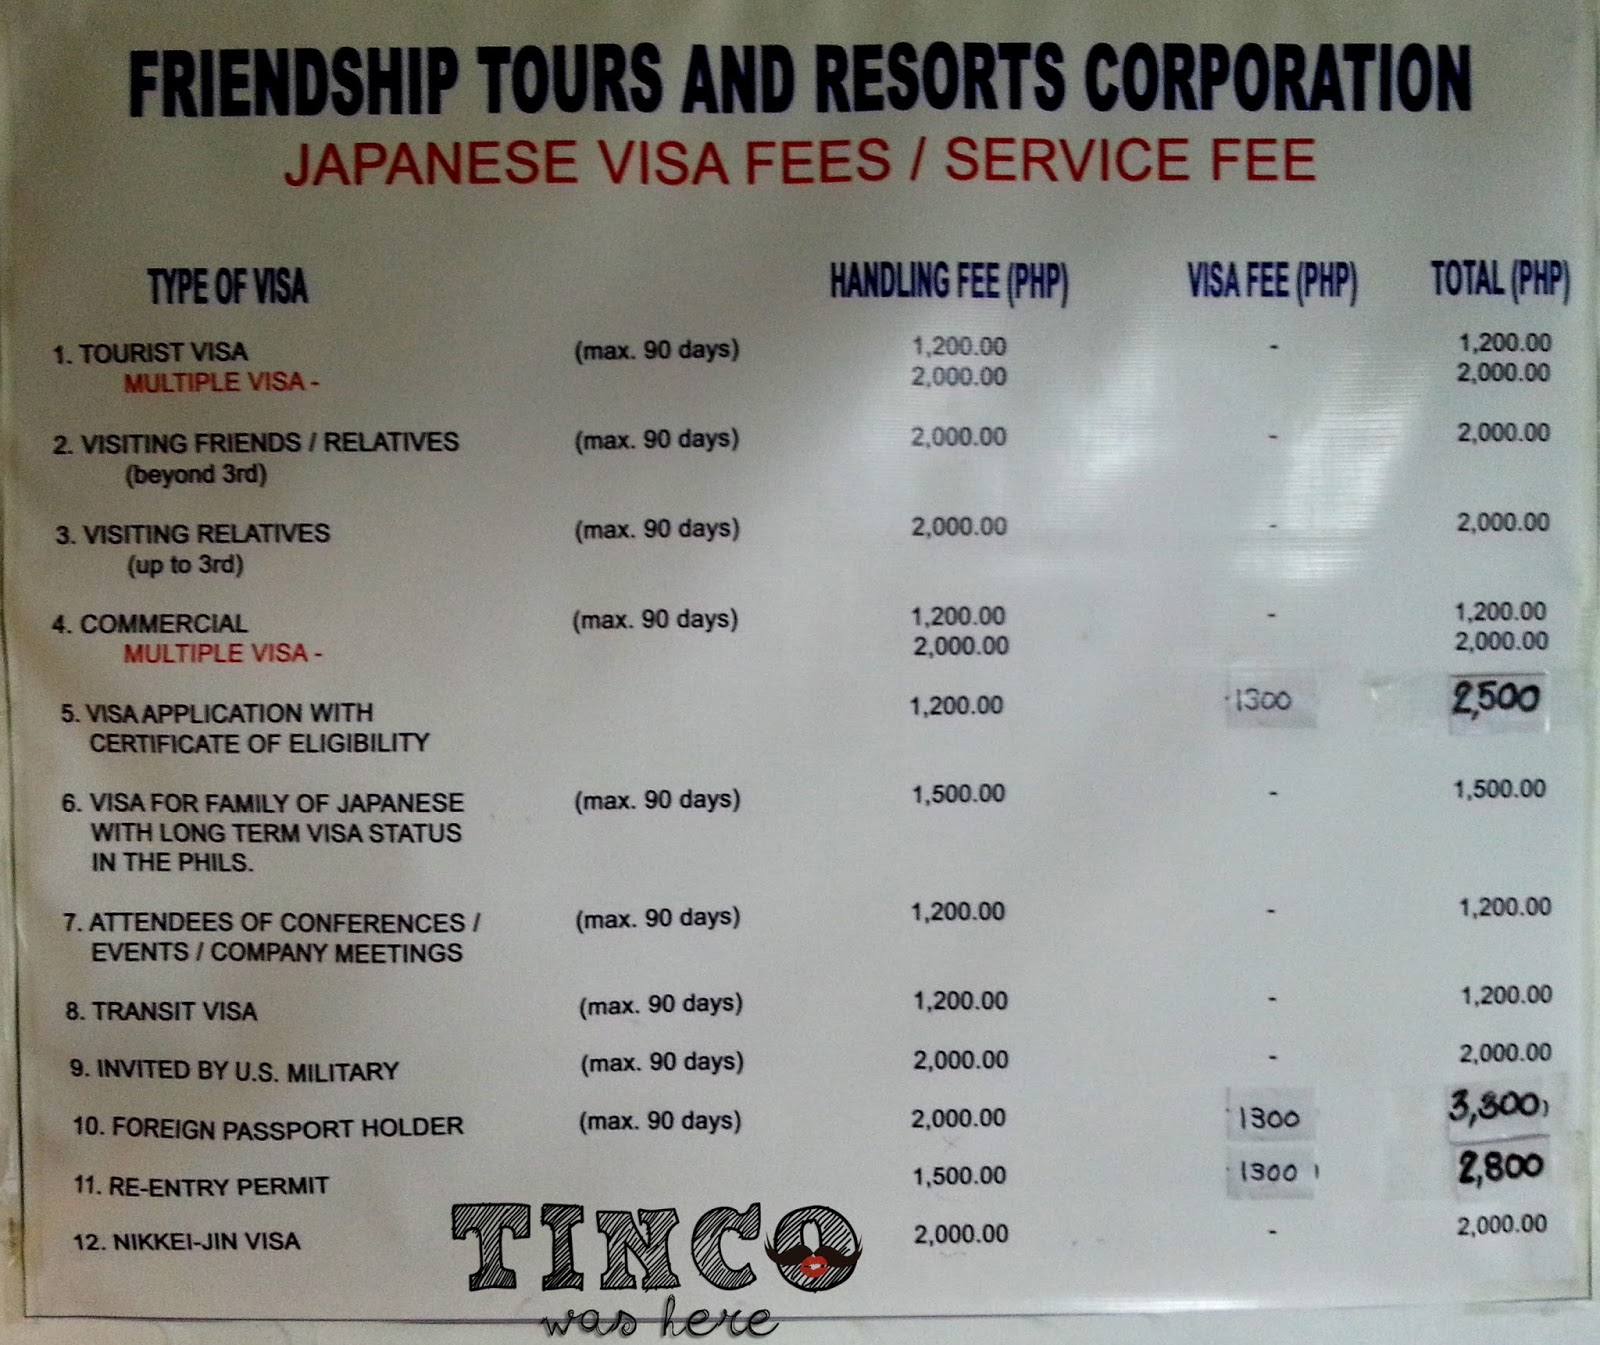 Tinco was here how to apply a japanese tourist visa for filipinos entrance to friendship tours office aiddatafo Gallery